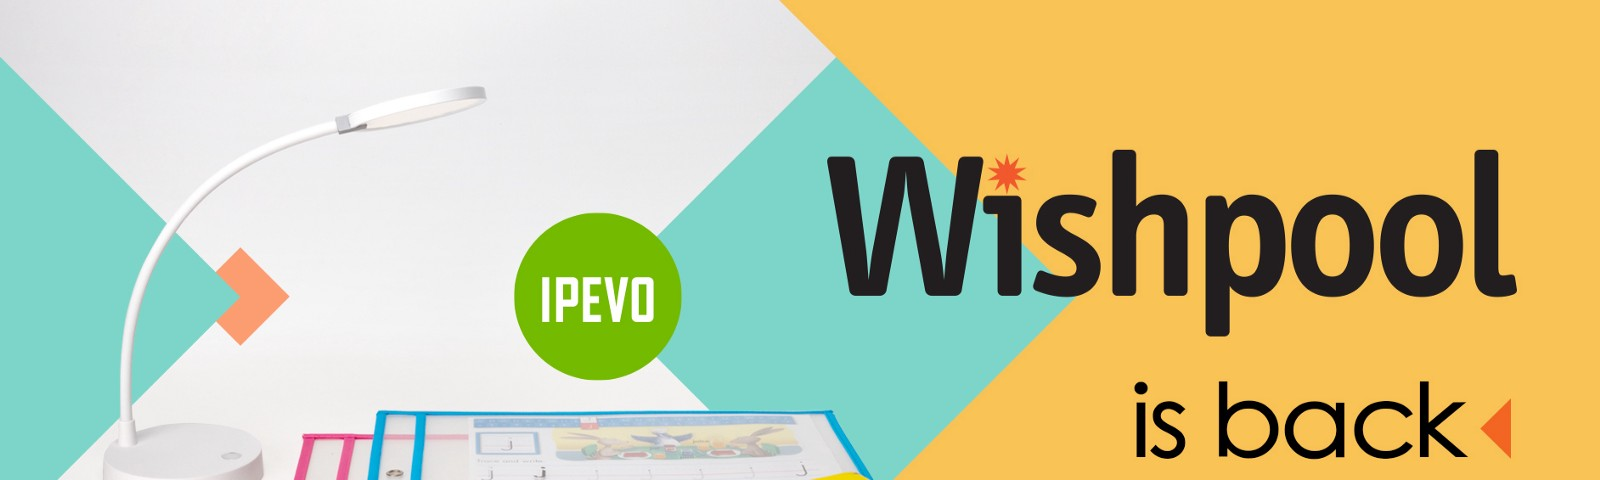 IPEVO Wishpool is back and check out the gifts we've in store for November!